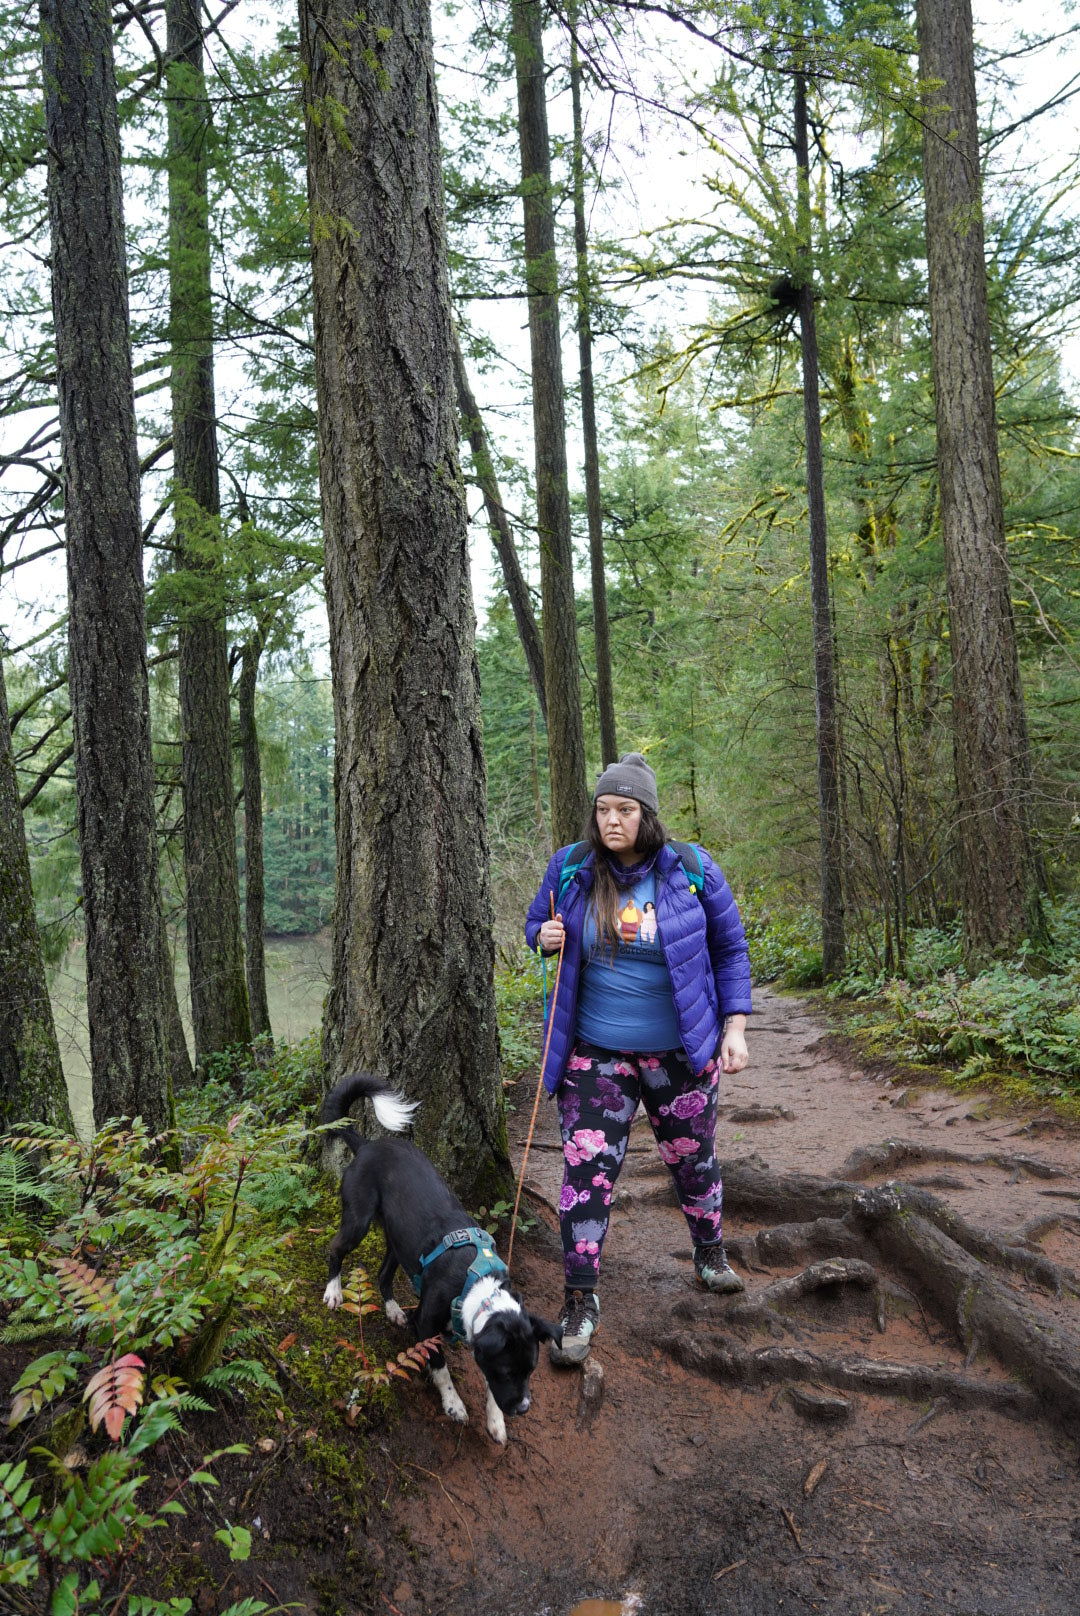 Jenny Bruso on hike in Oregon with dog in front range everyday harness.